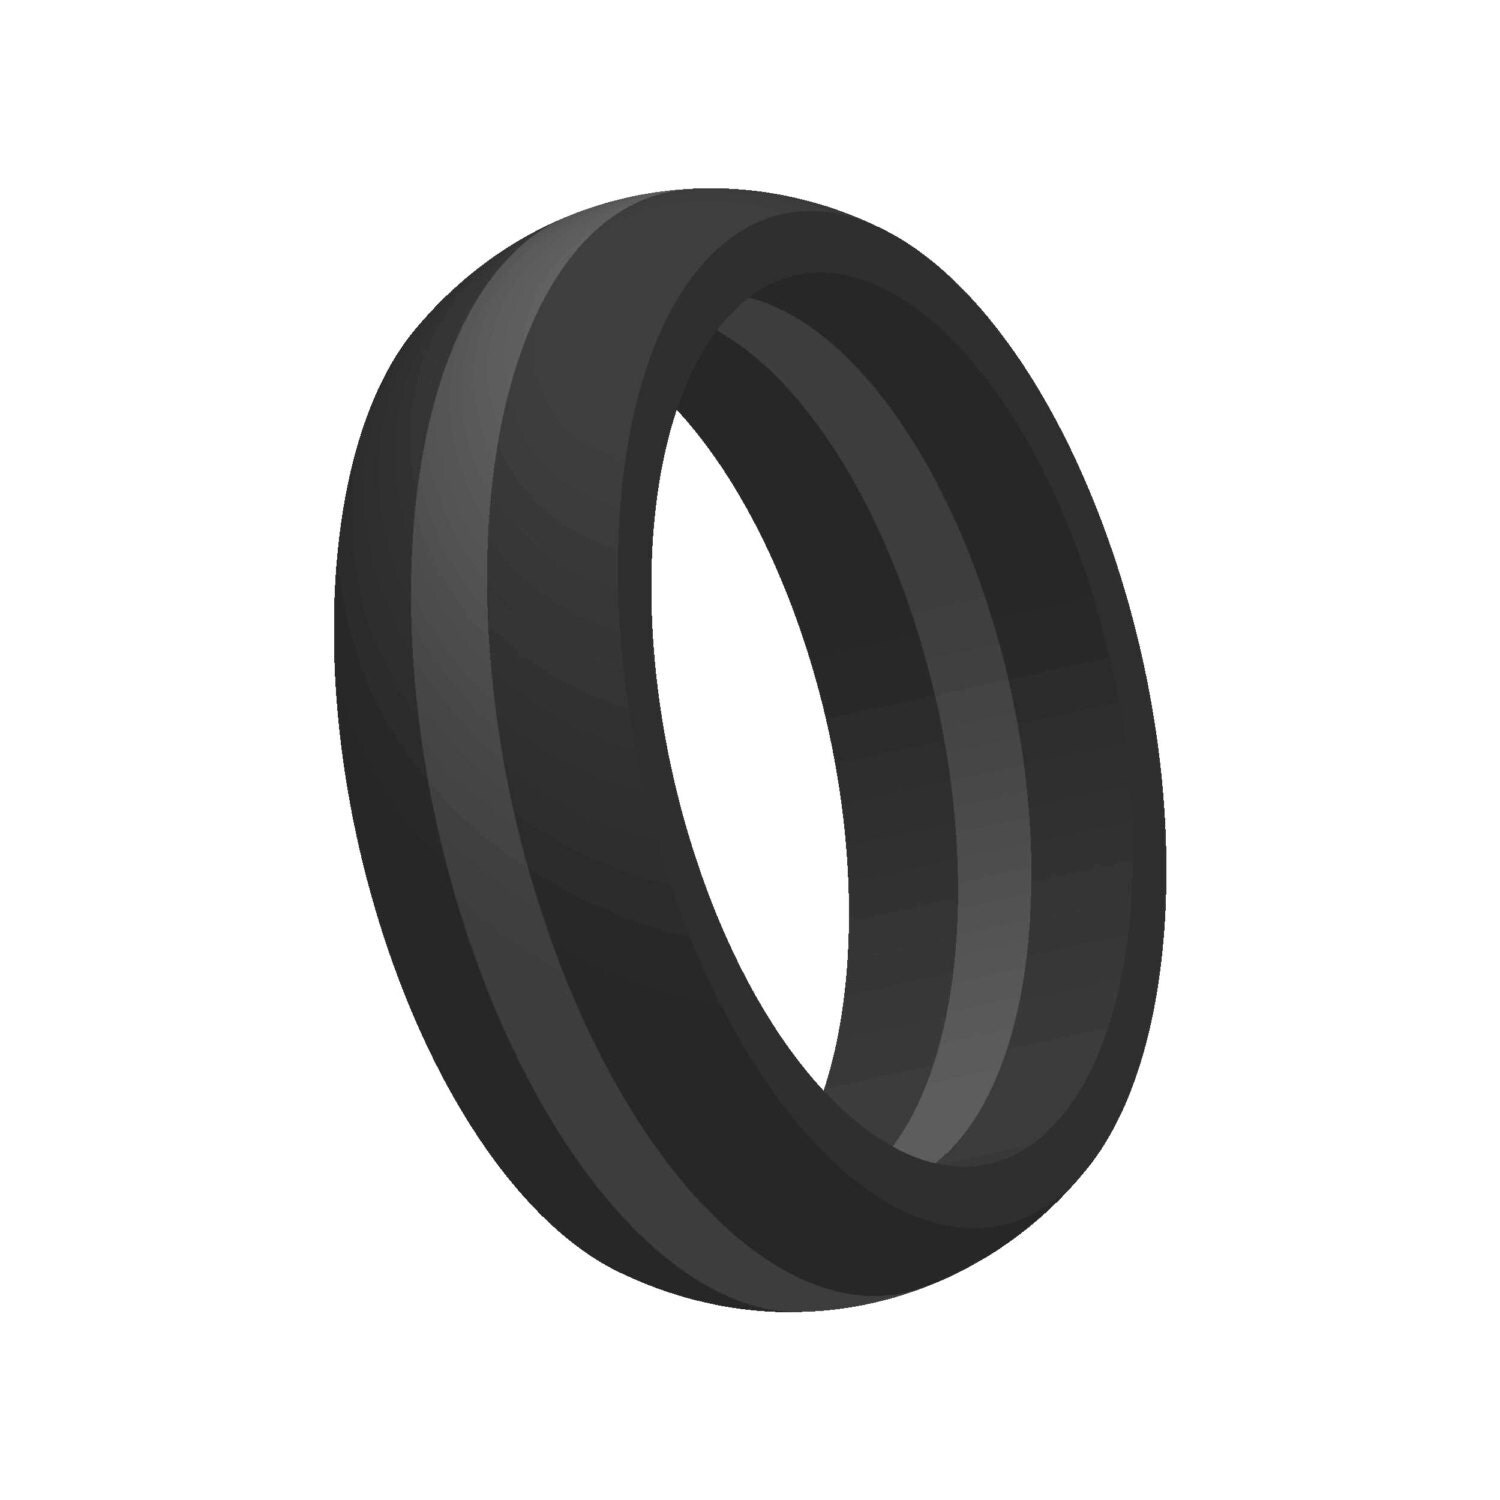 ModernFashionCo rubber mens wedding band Mens Black w Gray Line Silicone Wedding Engagement Ring Band Flexible Hypoallergenic Modern Sports Athletic Mans Jewelry FAST FREE SHIPPING